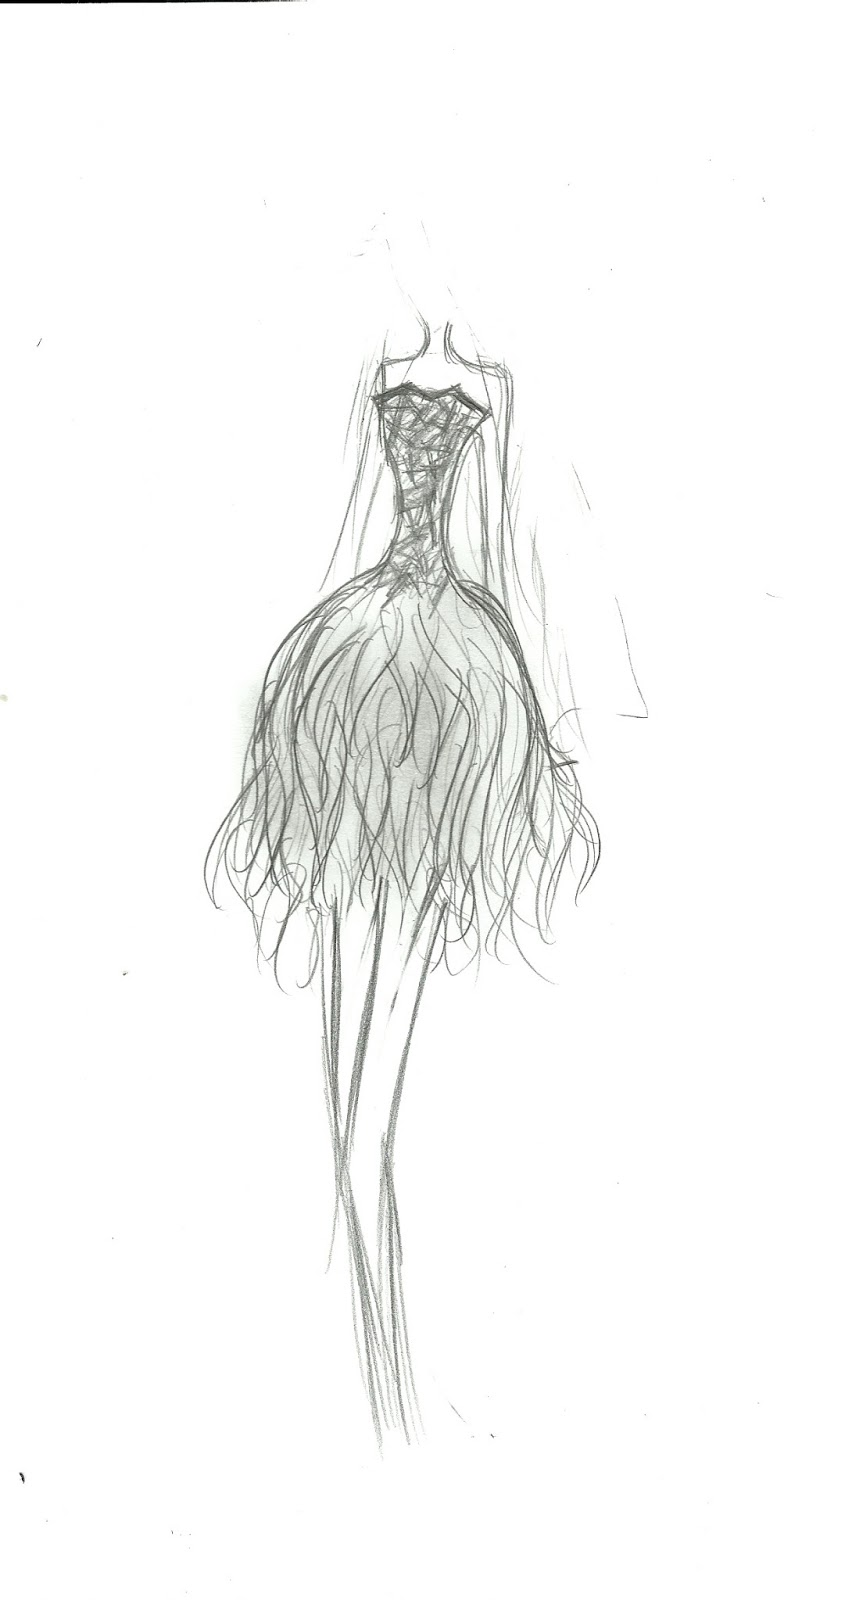 fashion design sketch 14 march 2013 hall of flames